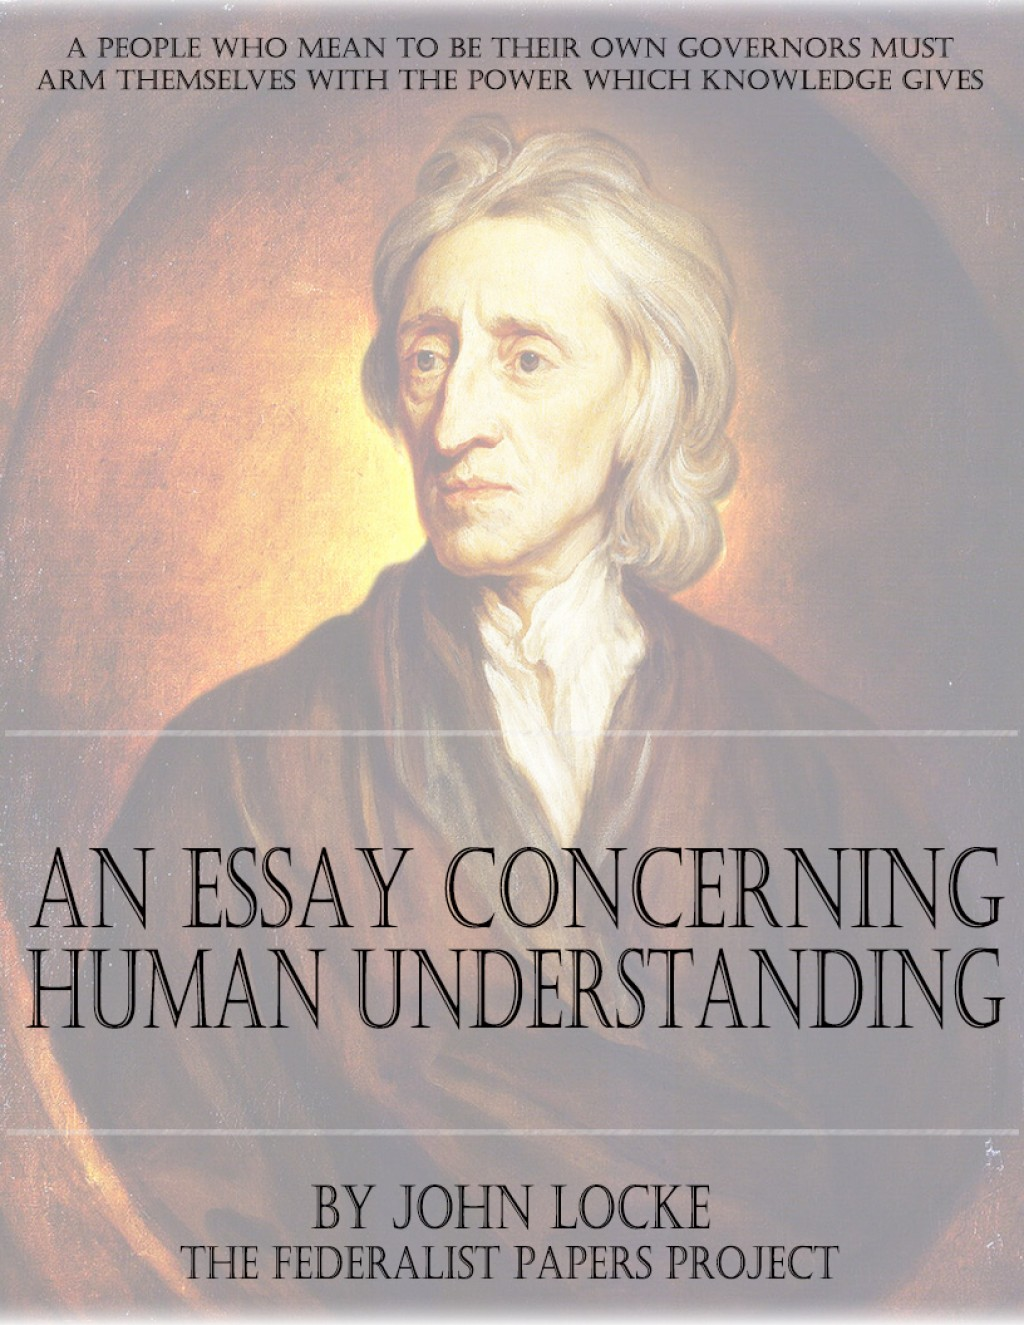 004 John Locke An Essay Concerning Human Understanding Cover Page1 Phenomenal Citation Full Text Pdf Book 2 Summary Large